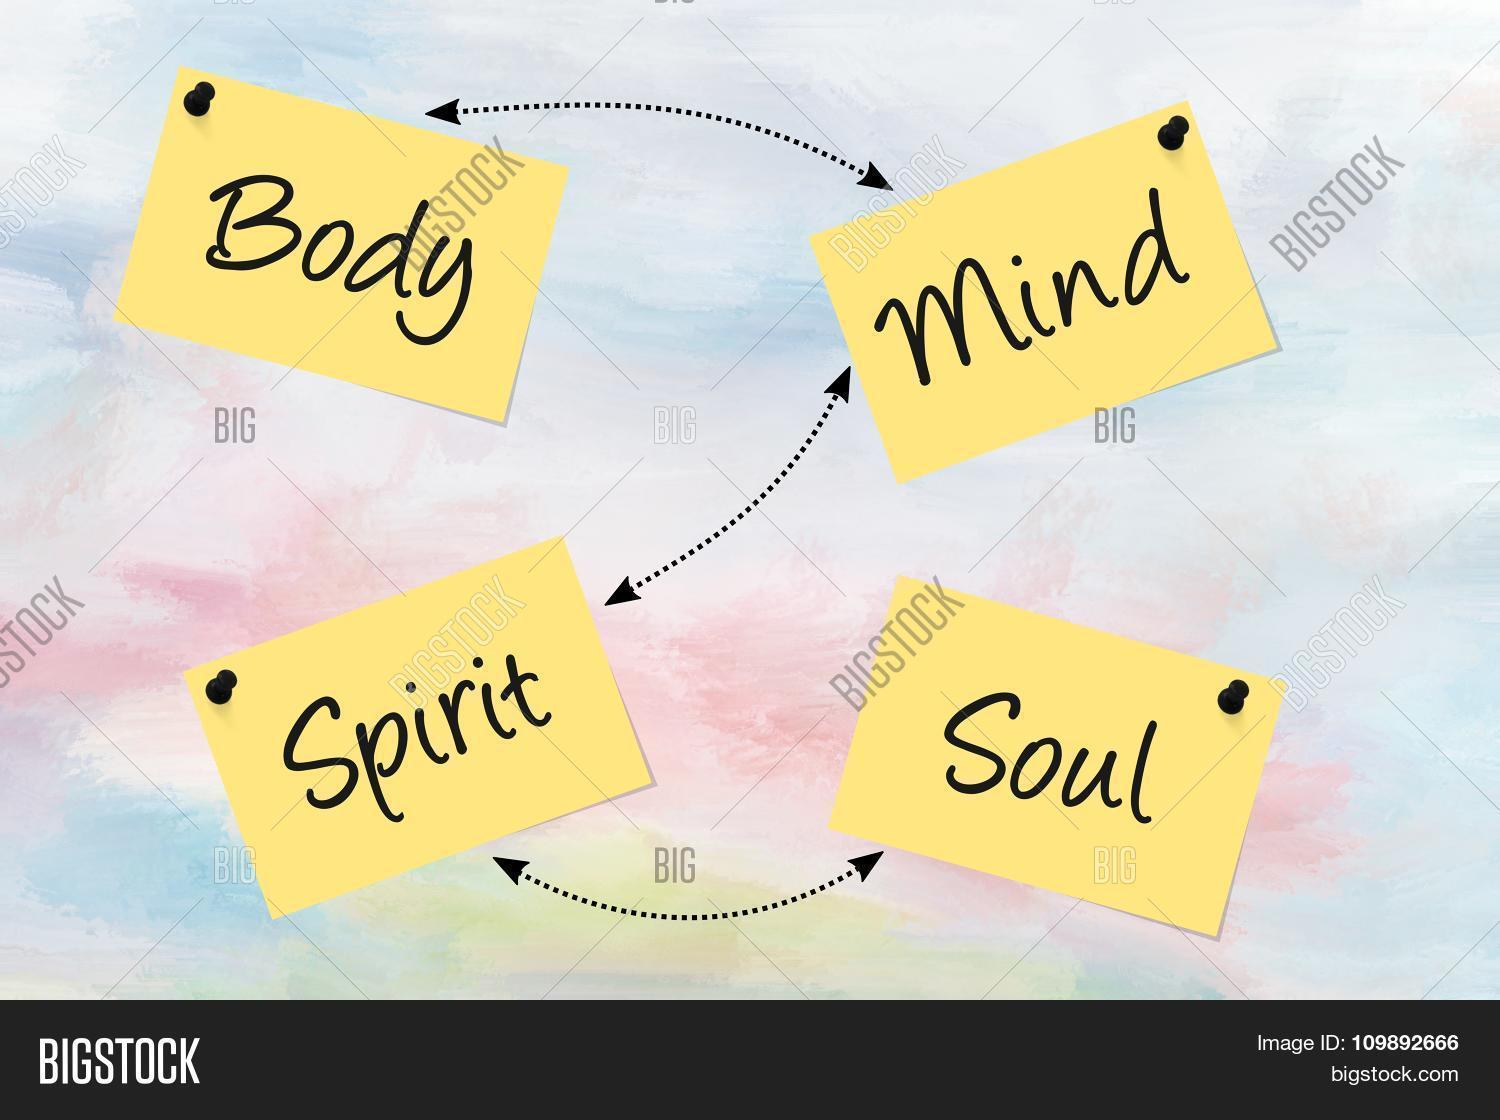 body and soul essay Aristotle: the body and soul according to aristotle a living creature is 'substance'  body = matter soul = form the soul (psyche) is the structure of the body - its.